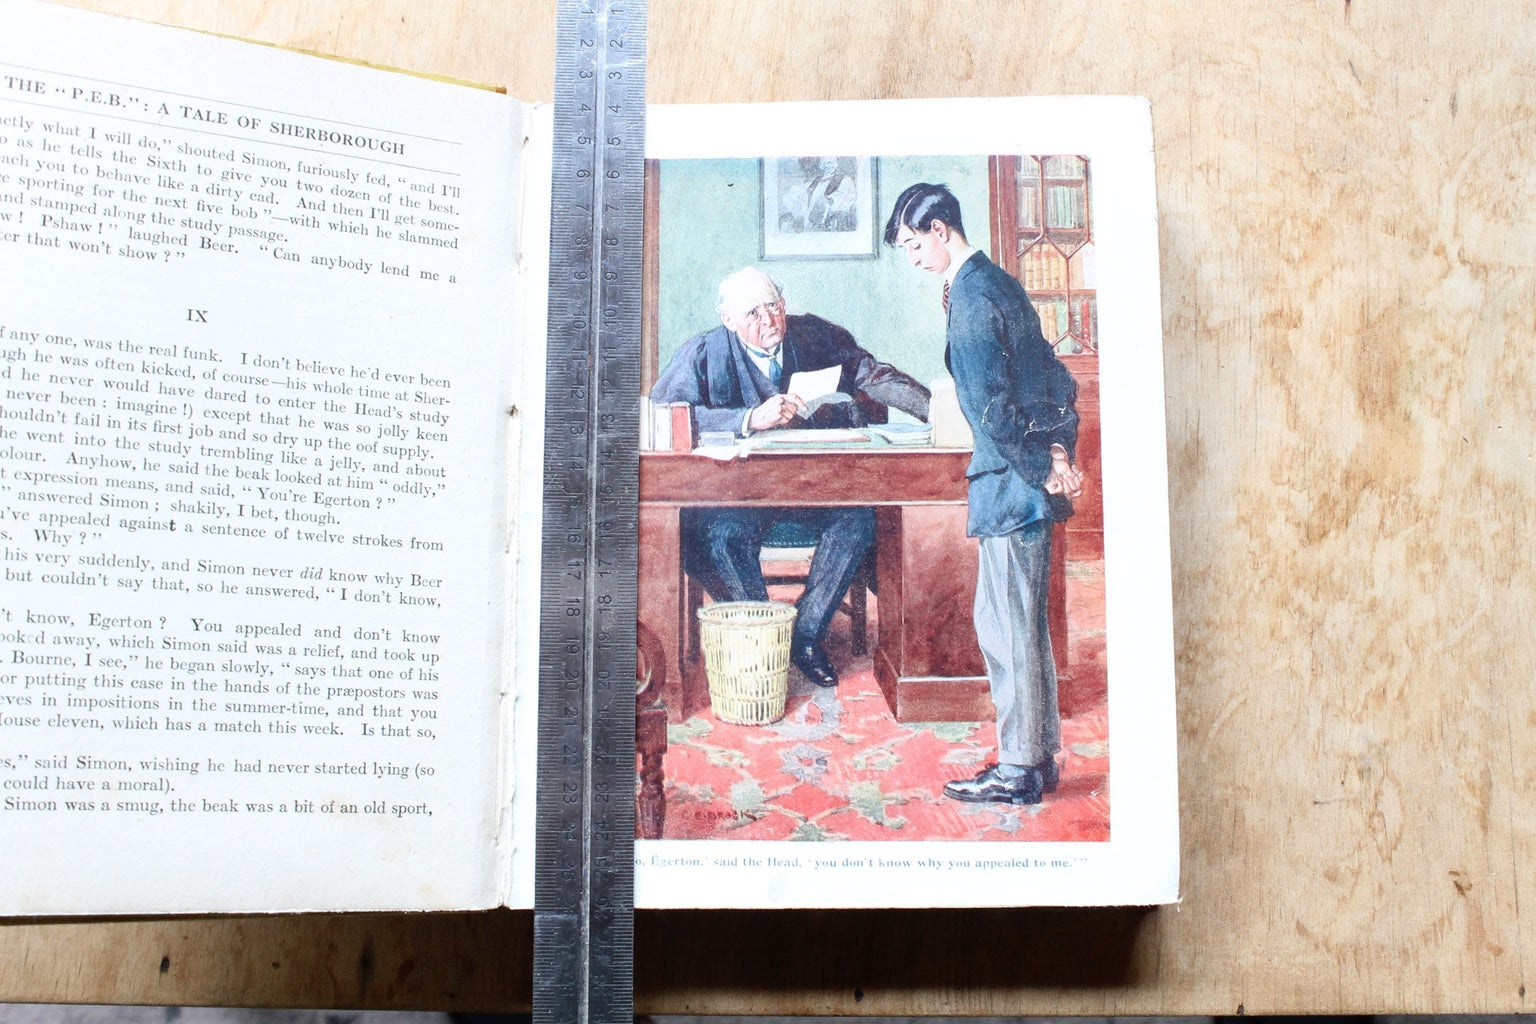 Cutting Out a Compartment in the Book